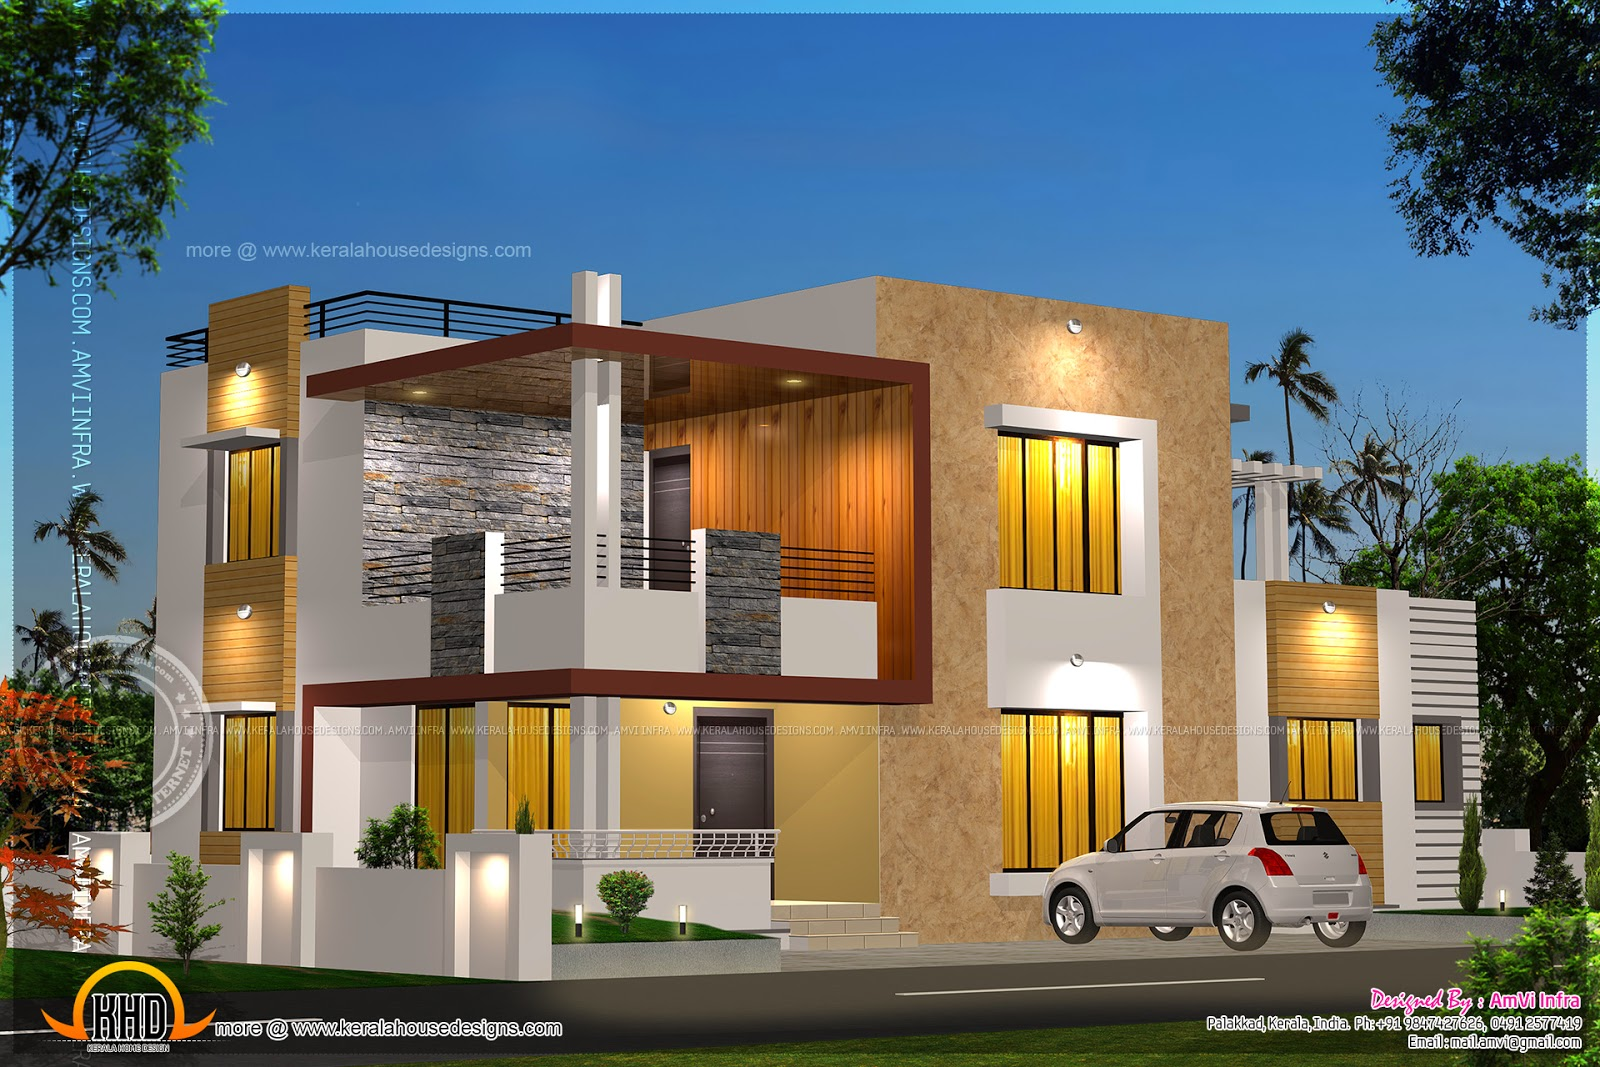 Floor Plan And Elevation Of A House : Floor plan and elevation of modern house kerala home